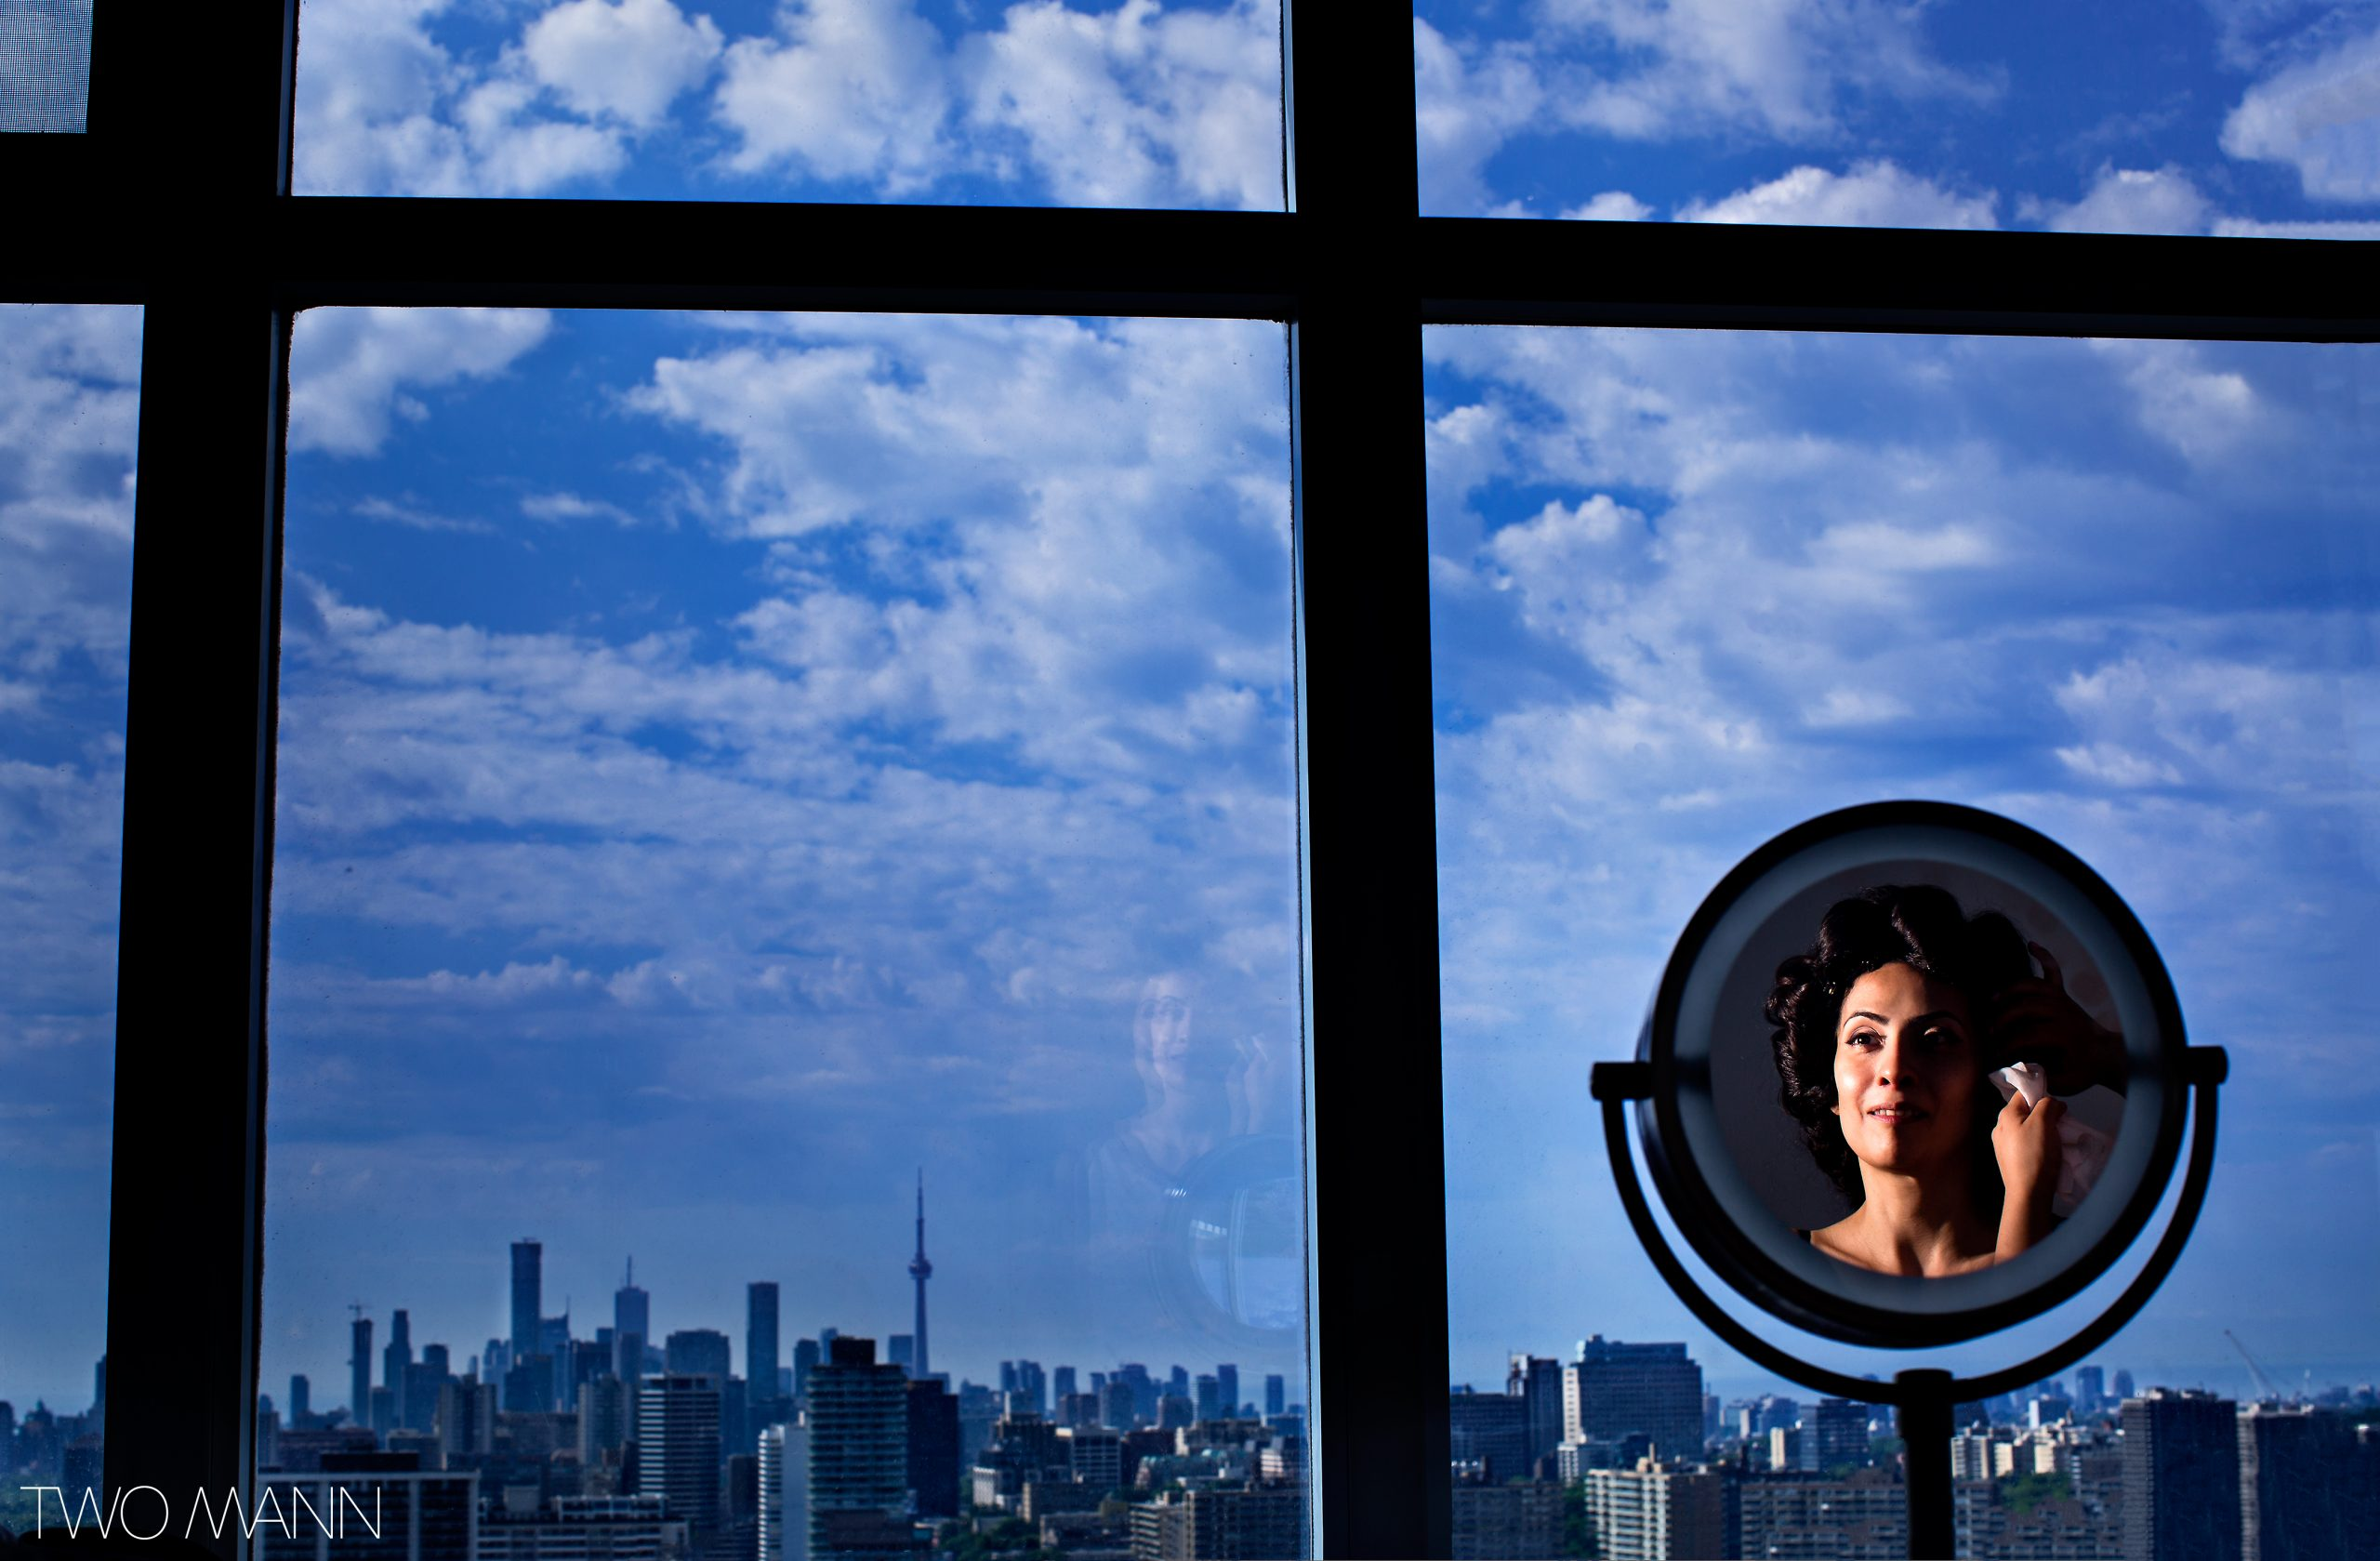 Reflection of woman doing her make up gazing at the Toronto cityscape outside her window